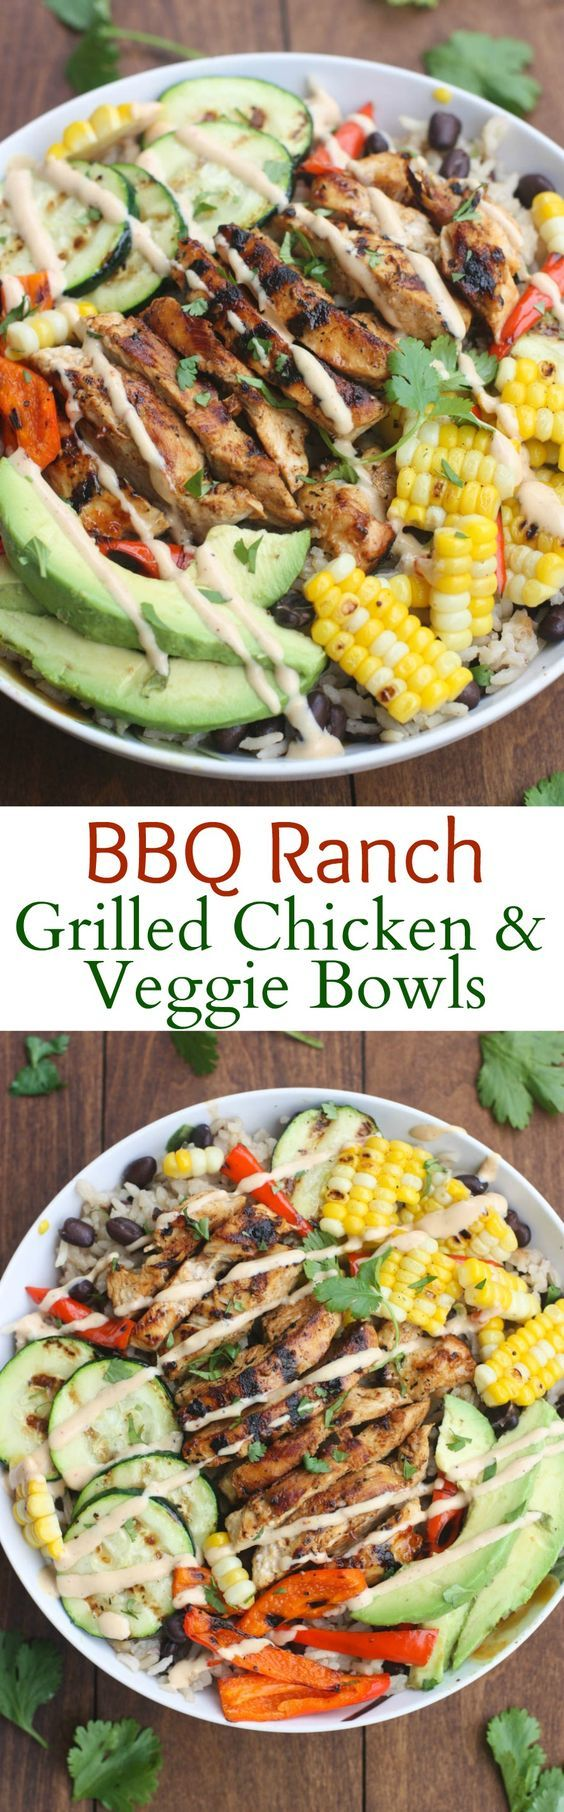 BBQ Ranch Gilled Chicken and Veggie Bowls served over black bean rice with delicious grilled veggies marinated and grilled chicken and a delicious honey BBQ ranch sauce.